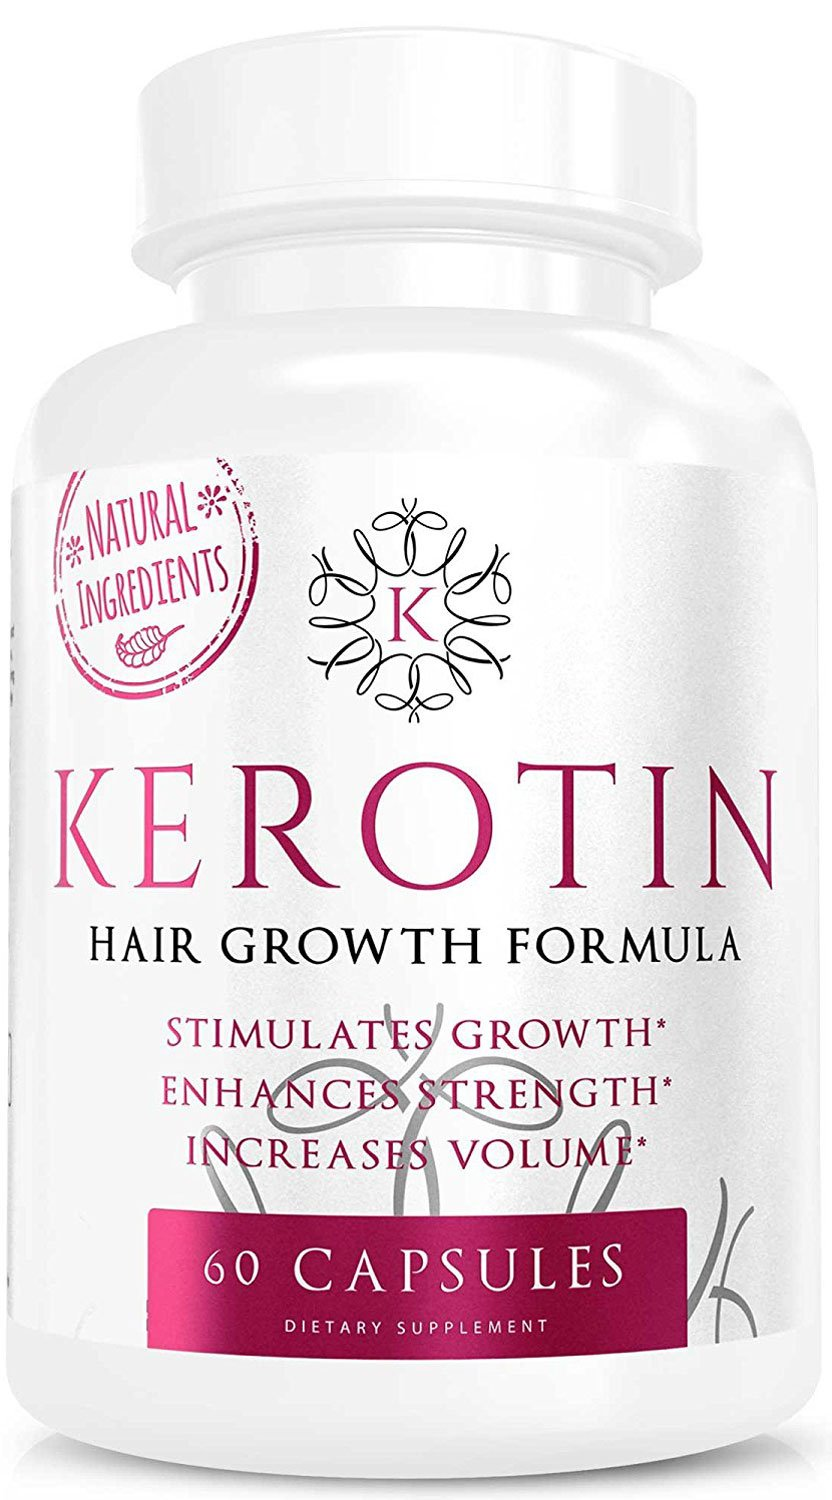 Kerotin Hair Growth Vitamins for Natural Longer, Stronger, Healthier Hair - Enriched with Biotin, Vitamin B, Folic Acid - Promotes Frizz-Free, Keratin Rich Hair for All Hair Types - 60 Capsules (1) by K Kerotin